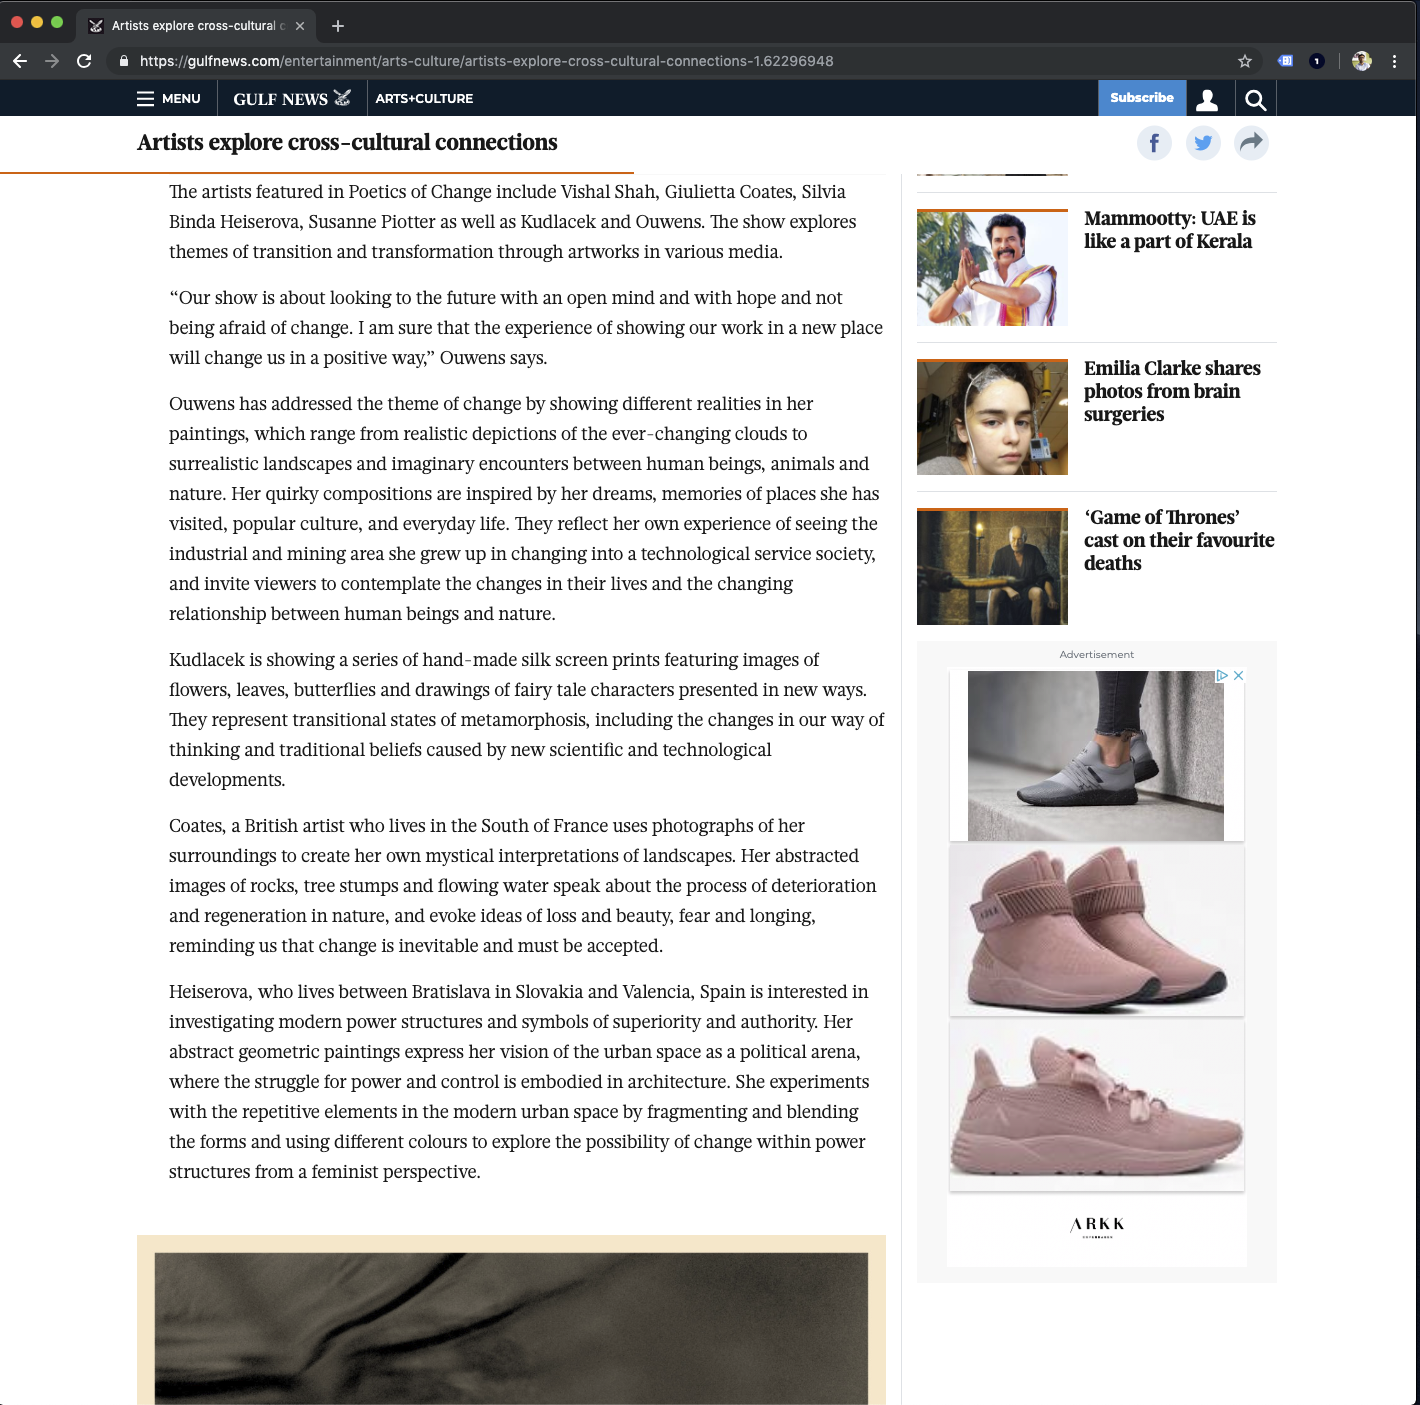 Screenshot 2019-04-13 at 18.27.24.png